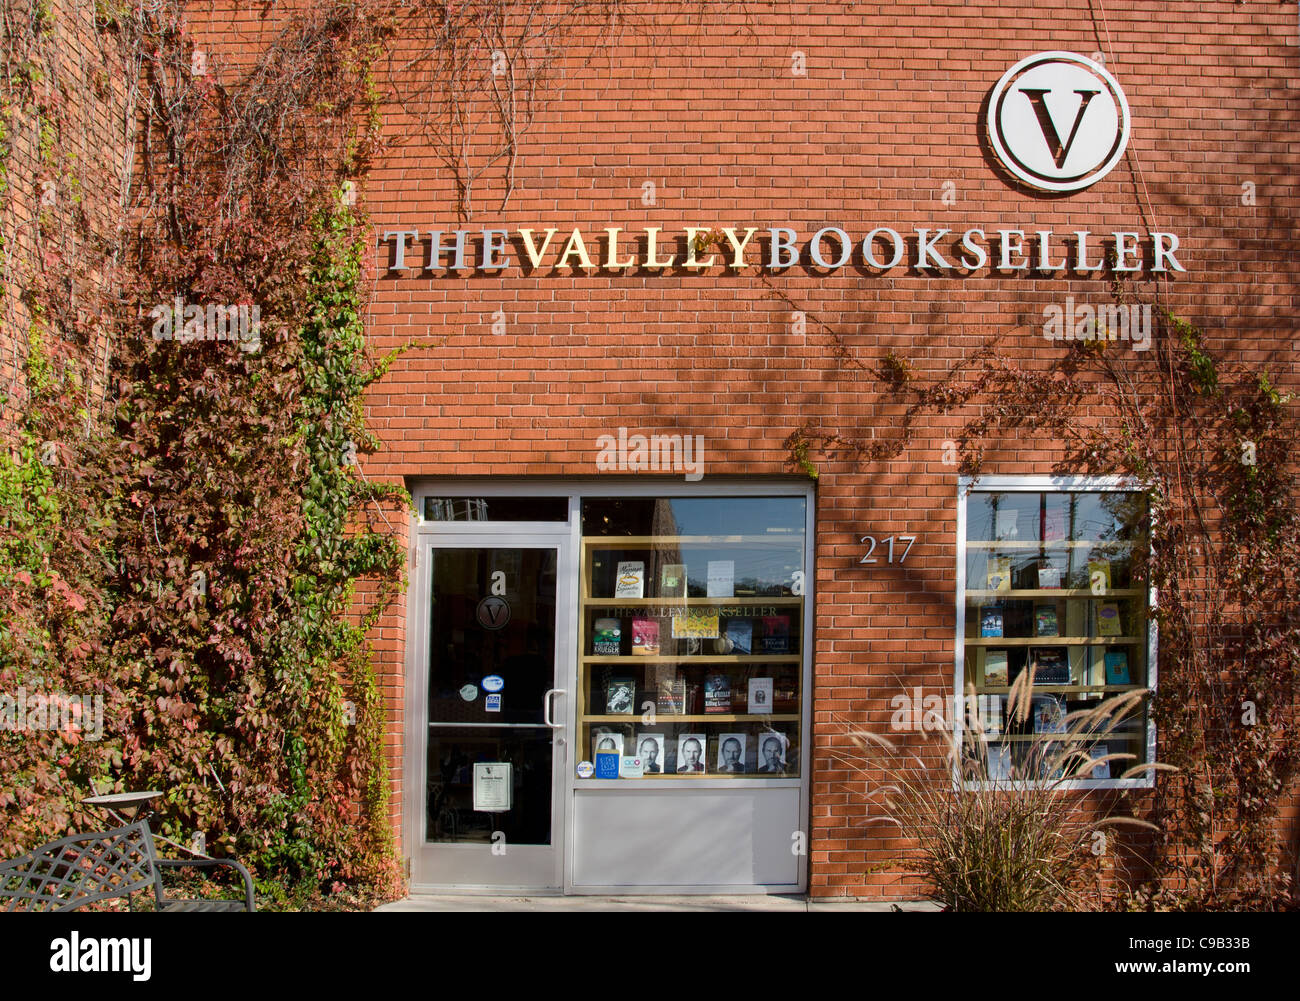 The Valley Bookseller in Stillwater, Minnesota, a town known for its bookstores, art galleries and antique stores. - Stock Image